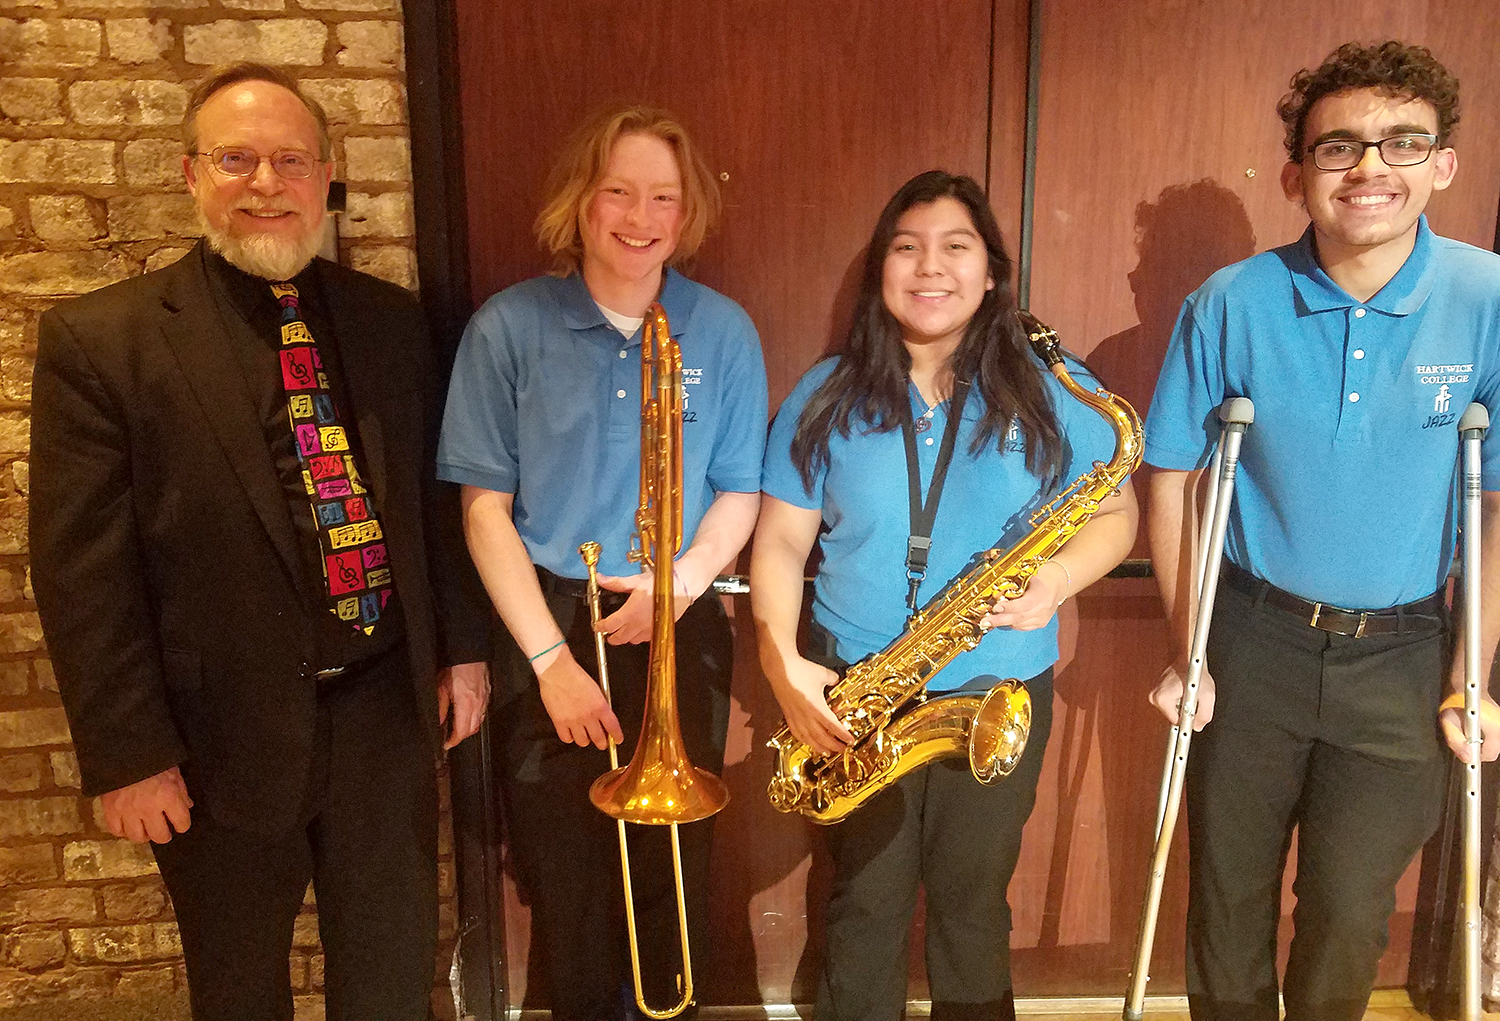 Sidney students take part in Hartwick College Jazz ensemble